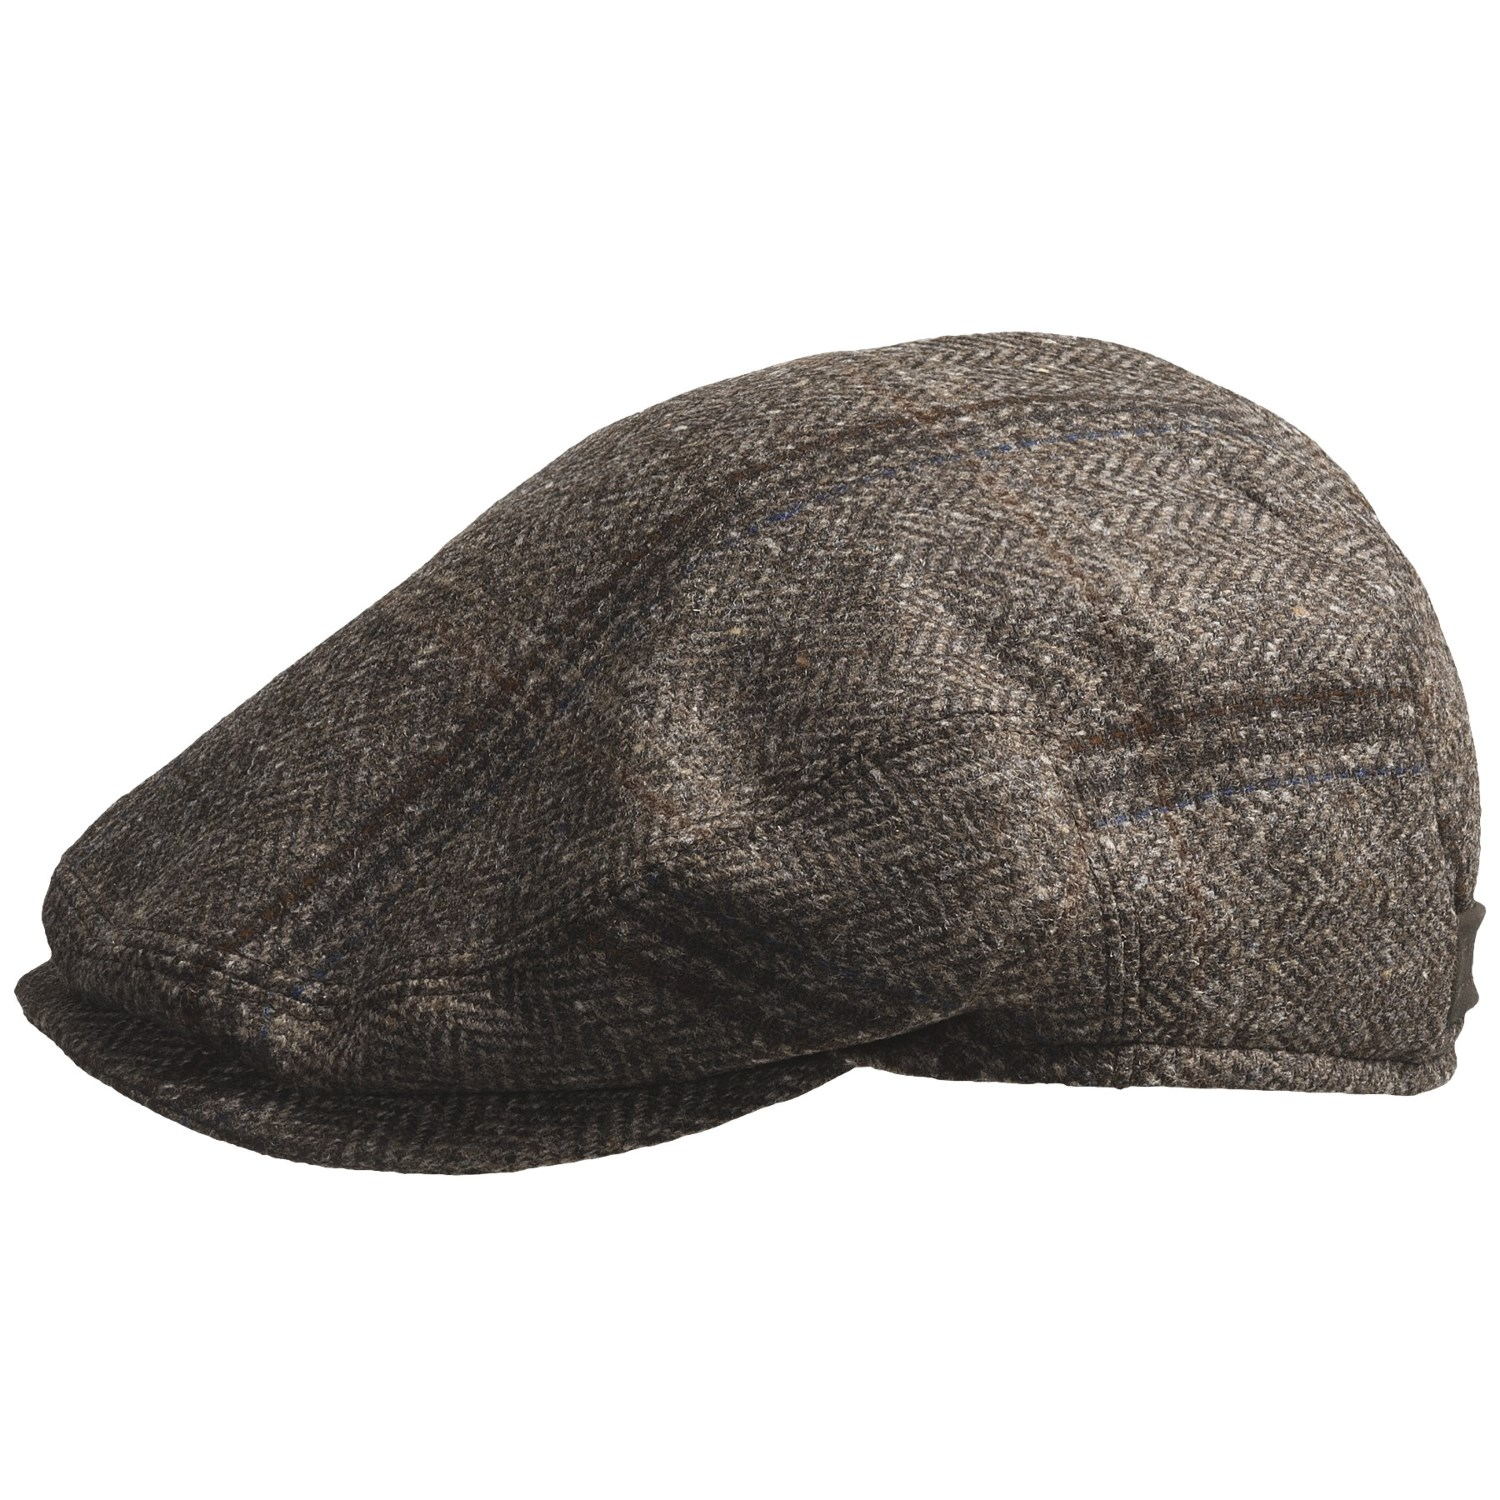 The driving cap (or flat cap) and newsboy cap (the floppier cousin of the driving cap) do not have the best reputation in the fashion world.